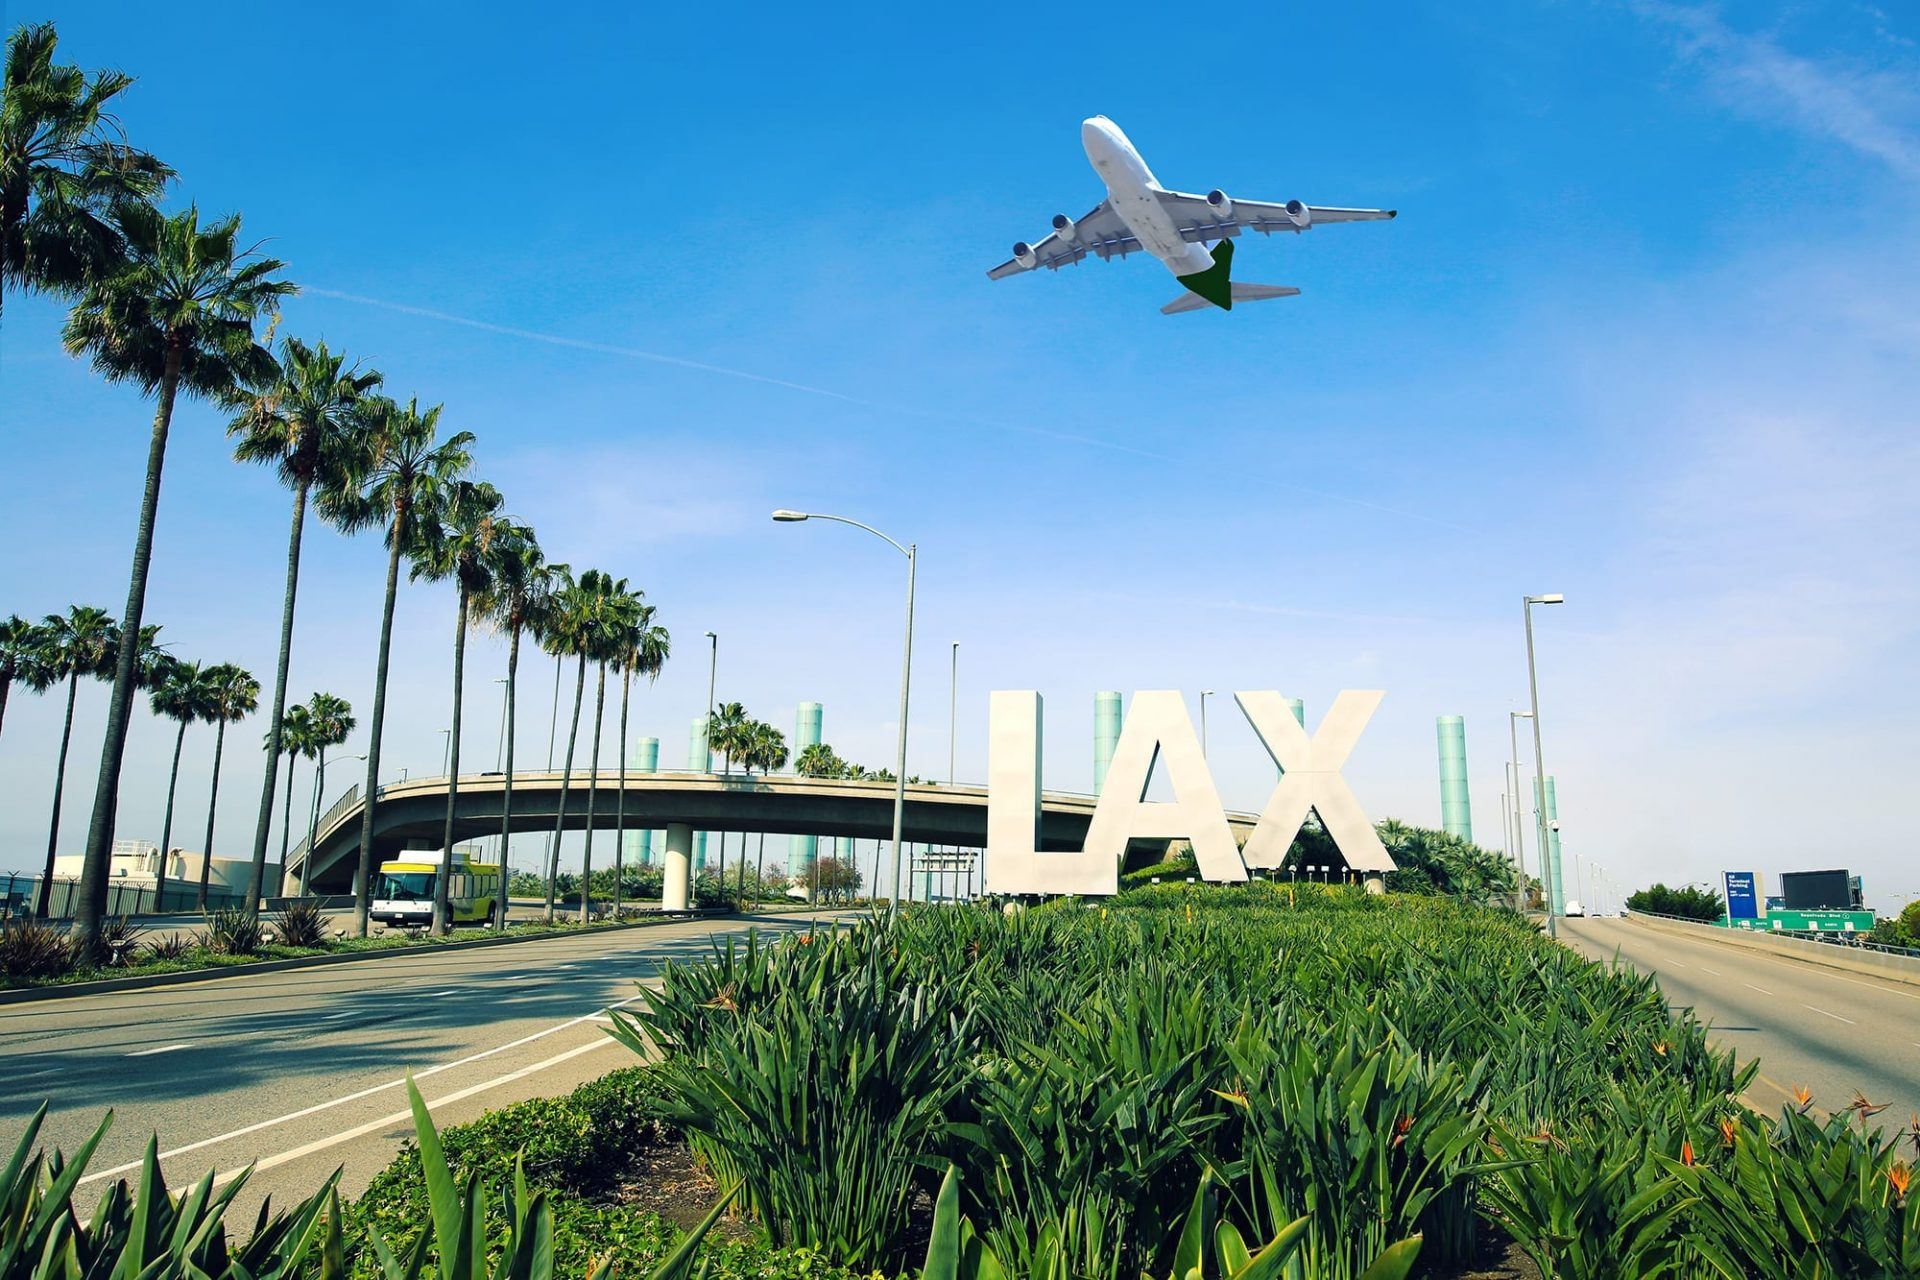 LAX expansion plans call for a new terminal east of Sepulveda Boulevard